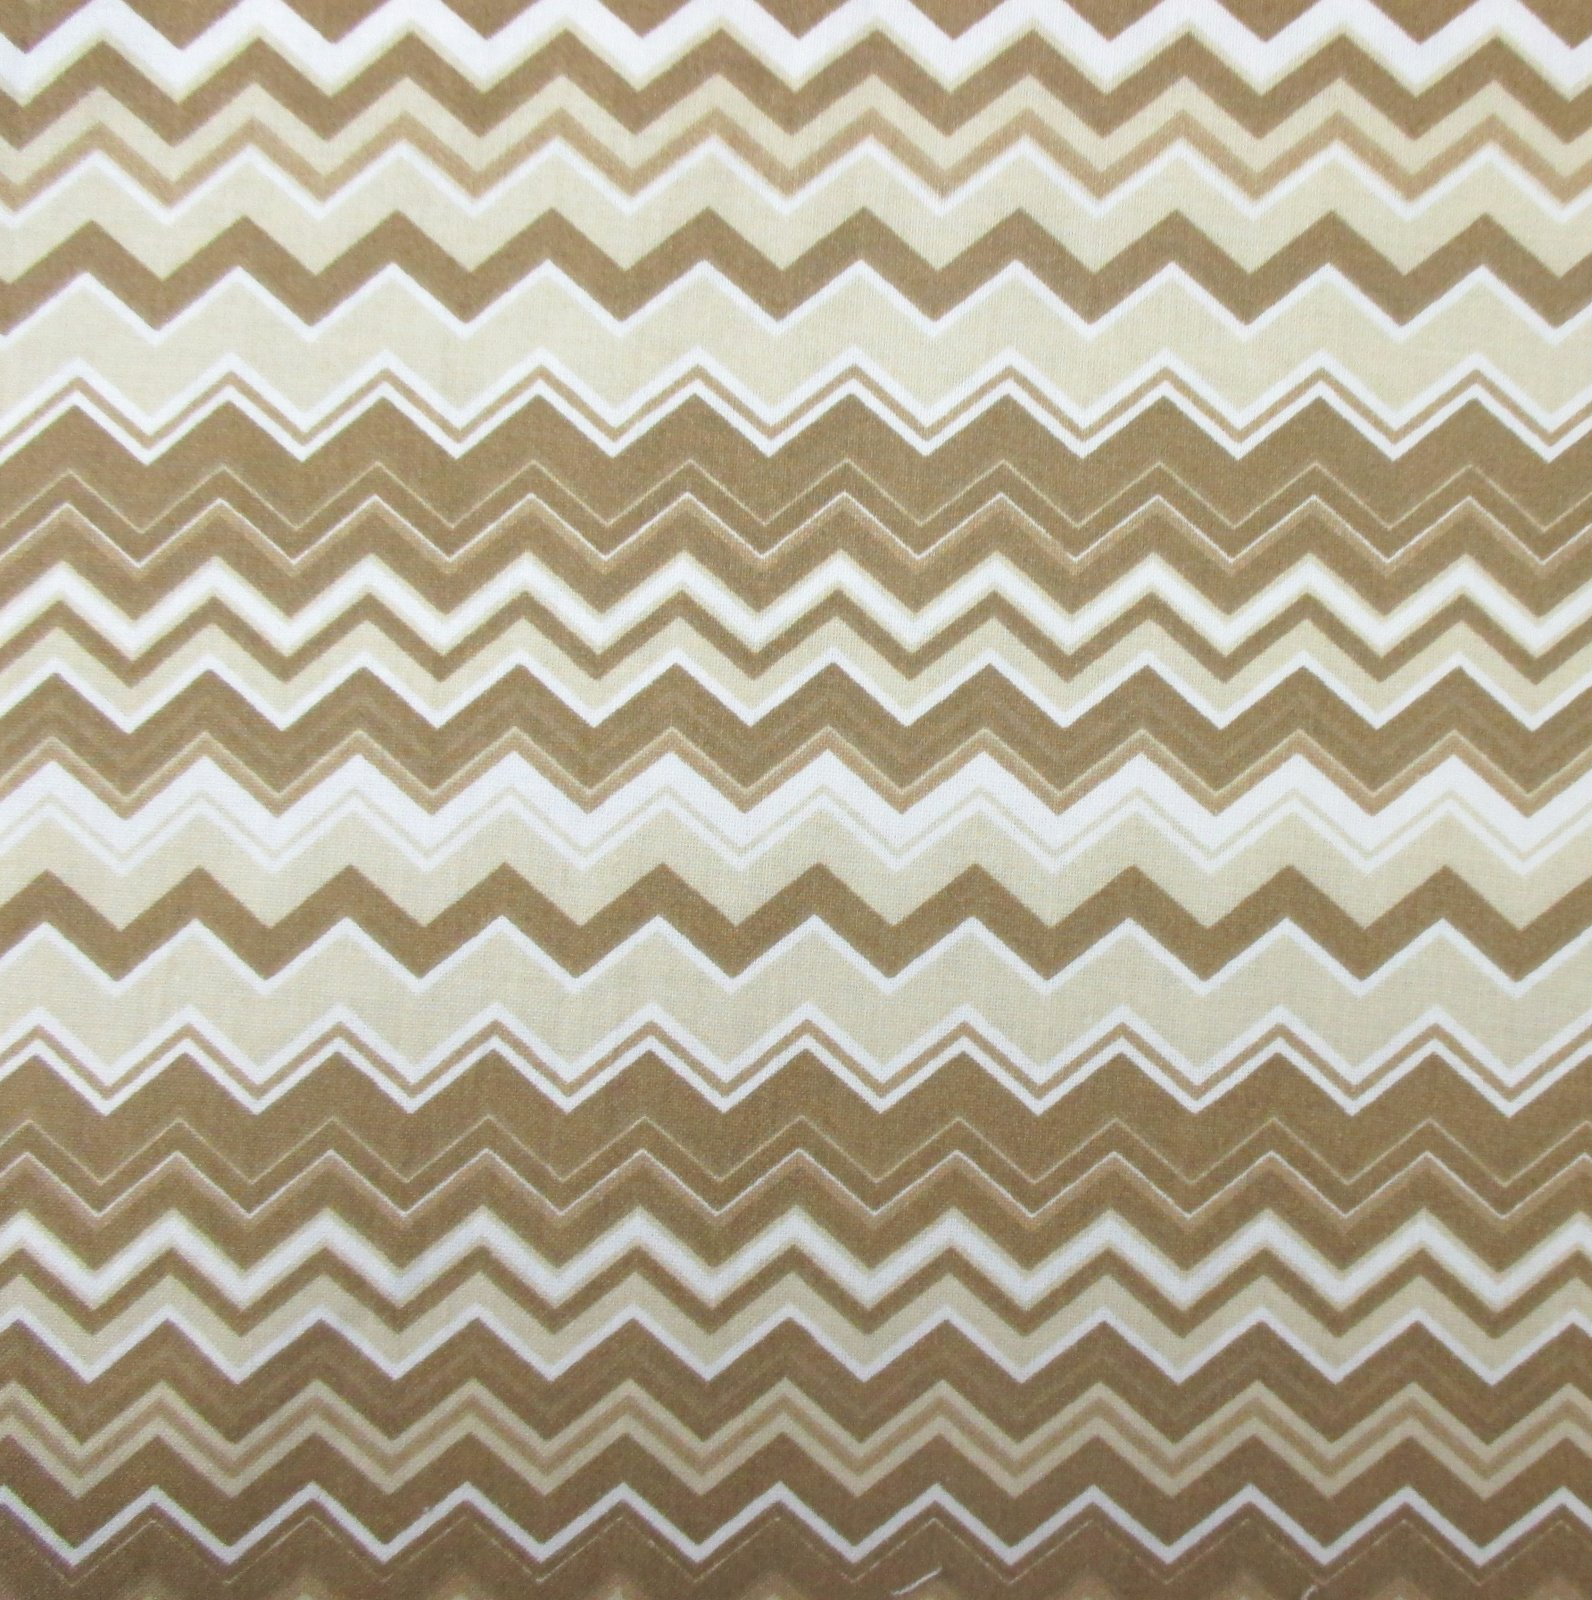 A.E. Nathan - Chevron - Brown/Tan/White